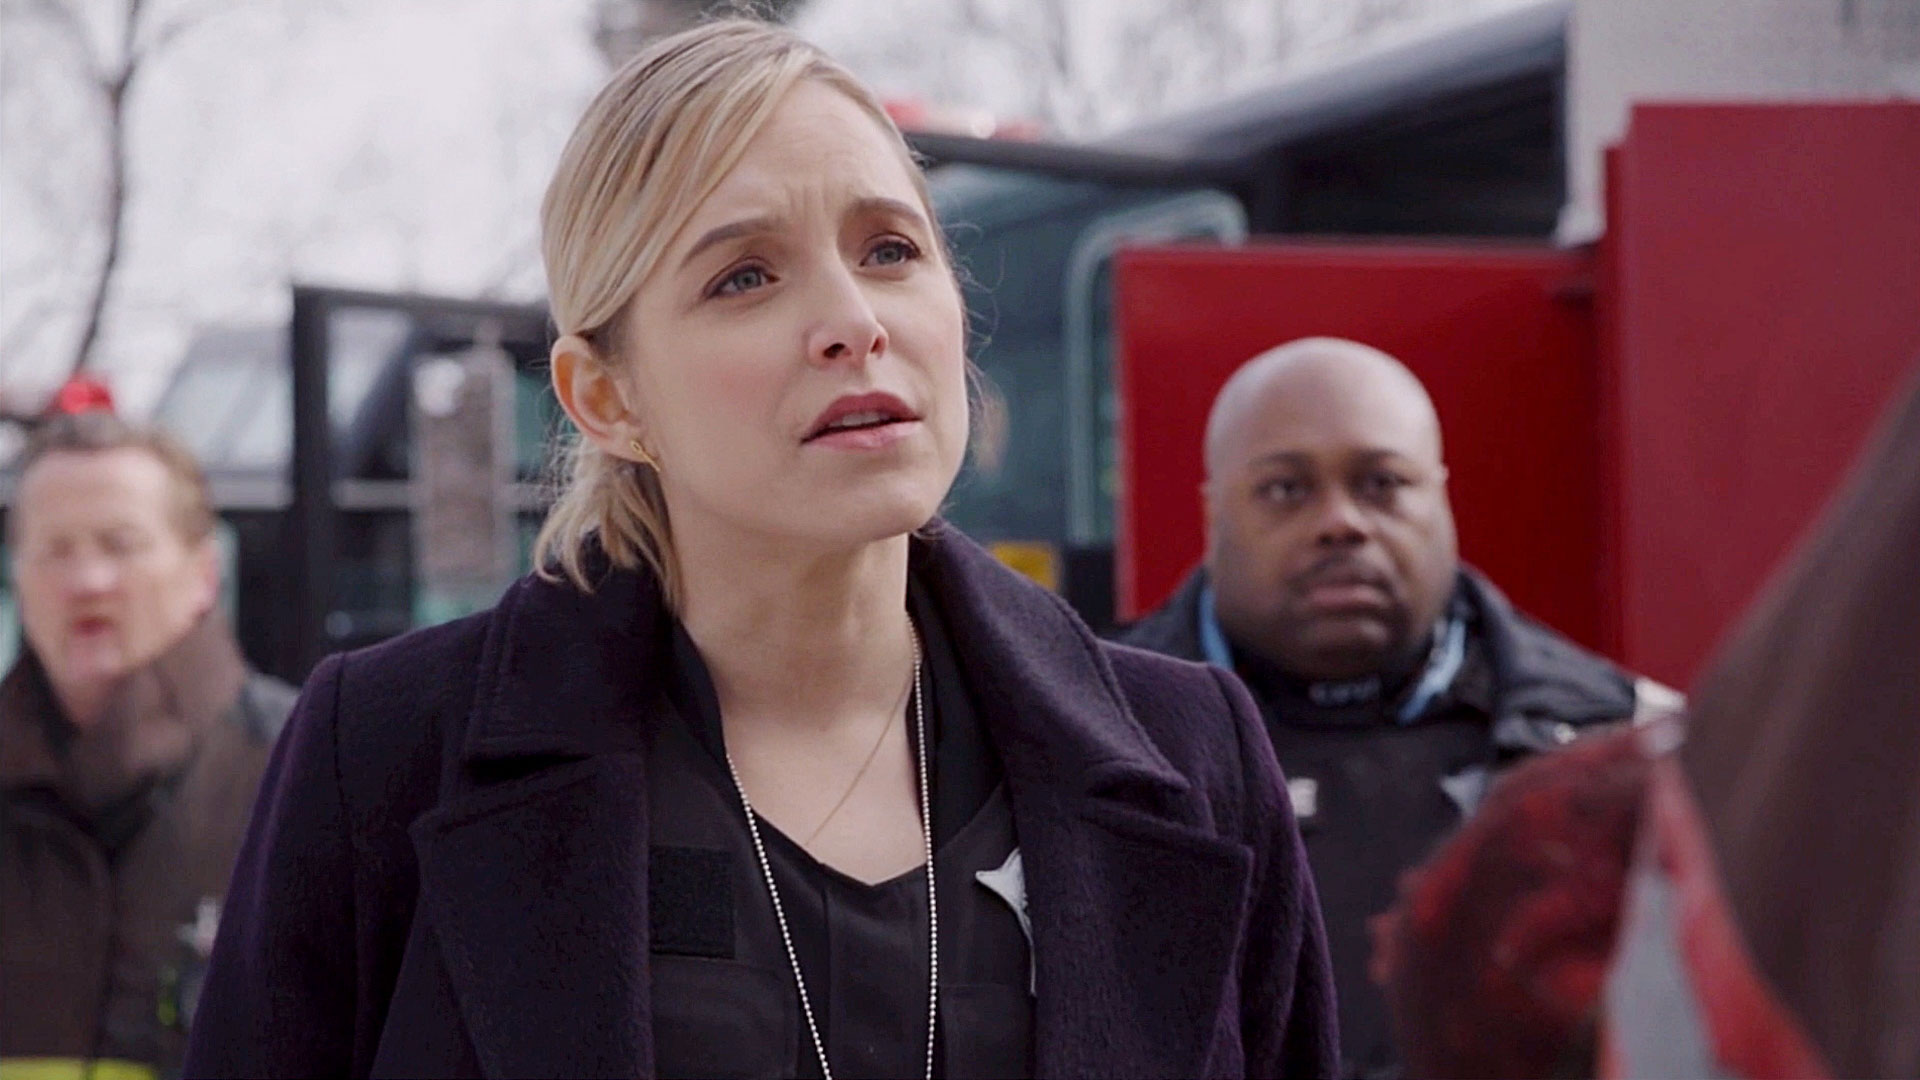 S4_Chicago_Fire_Jenny_Mollen_84_WEB.jpg